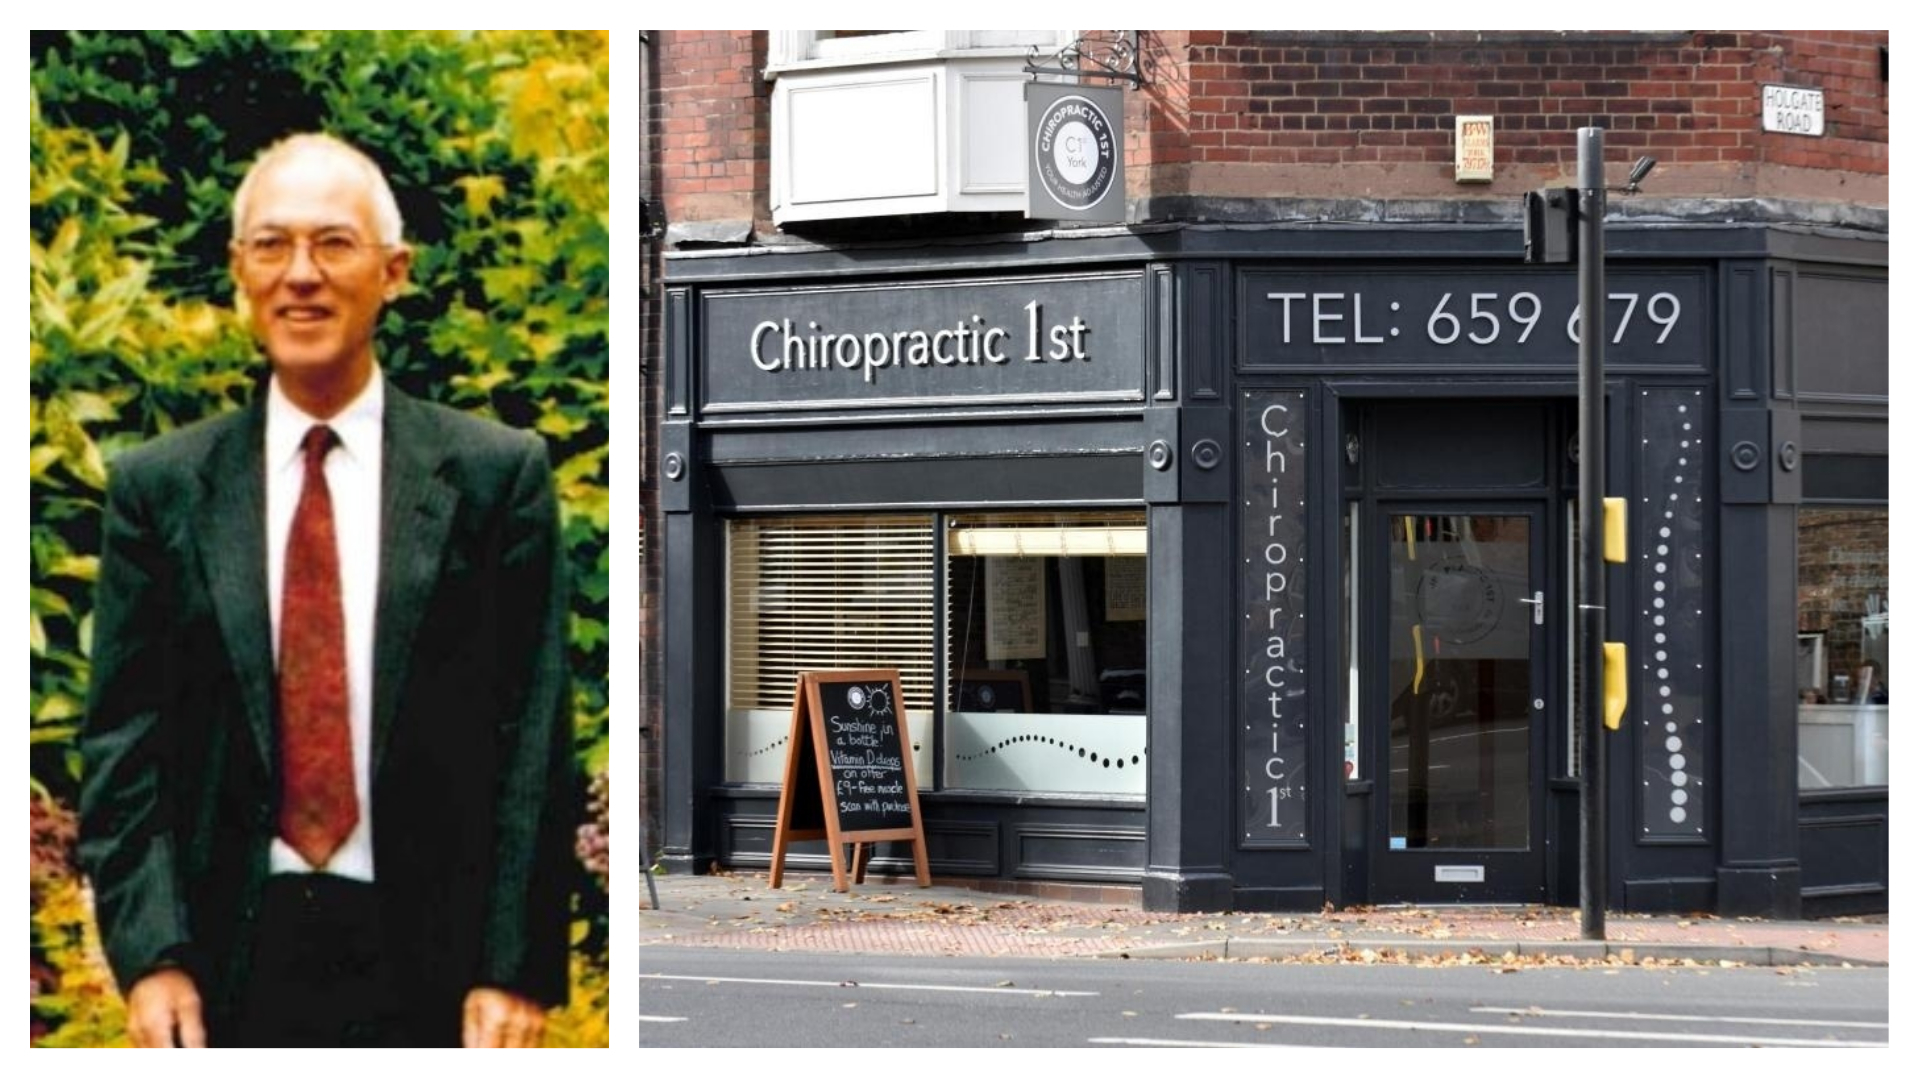 John Lawler, 80, suffered broken neck during treatment by chiropractor, inquest hears